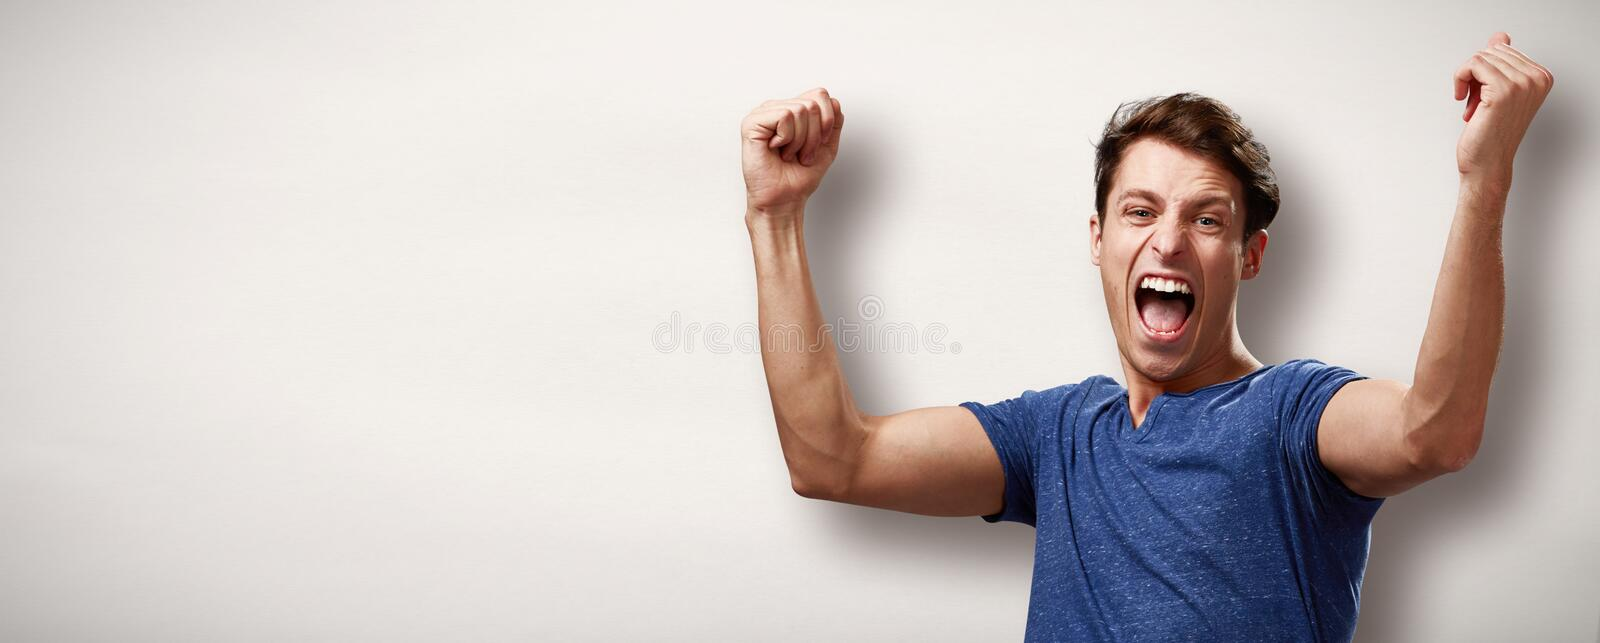 Happy young man. Happy excited laughing winner young man face expression royalty free stock photos